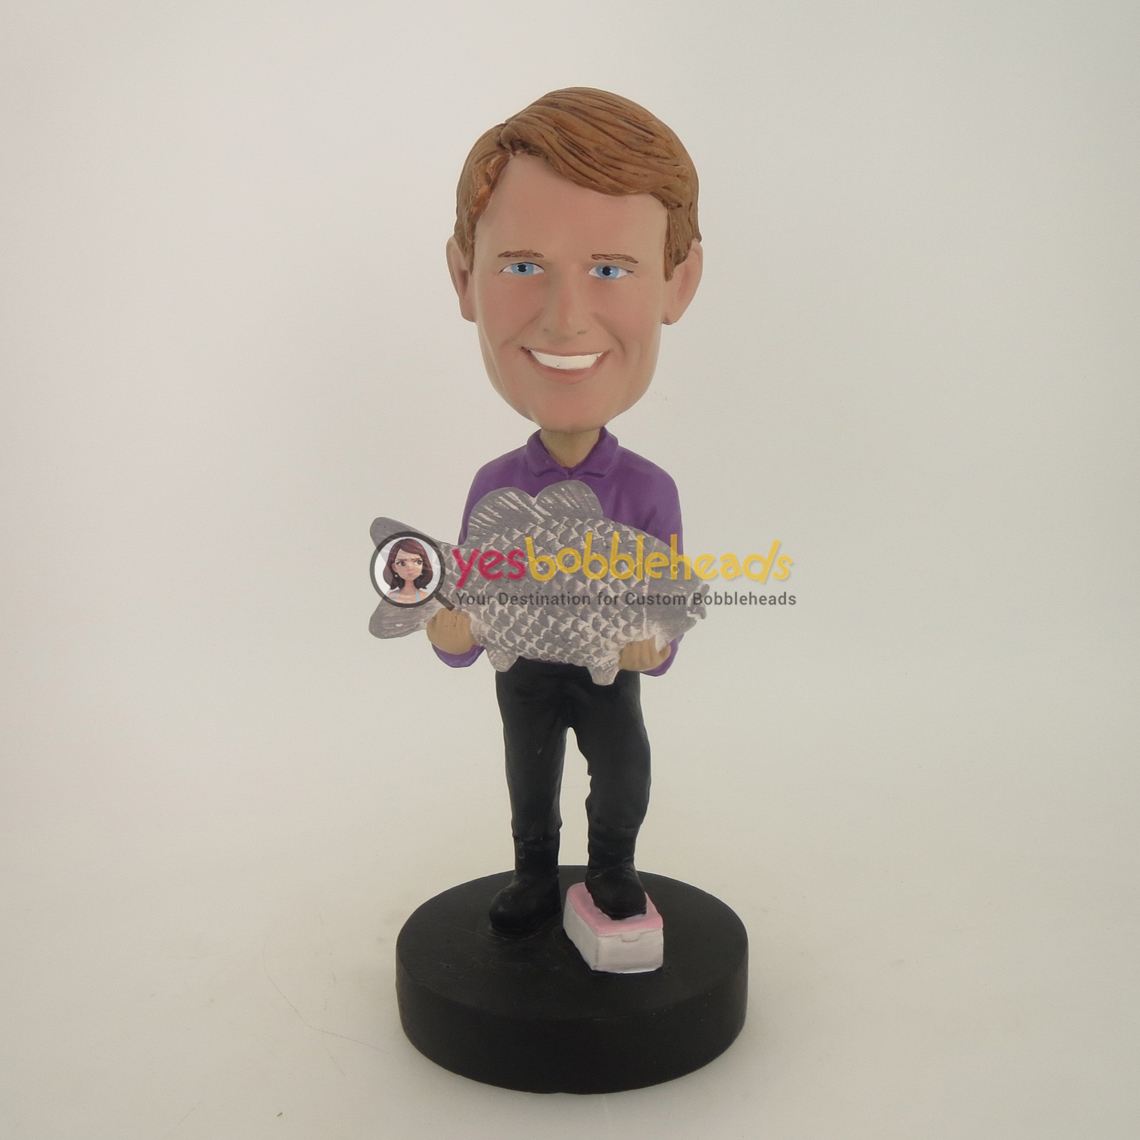 Picture of Custom Bobblehead Doll: Big Catch Fisherman